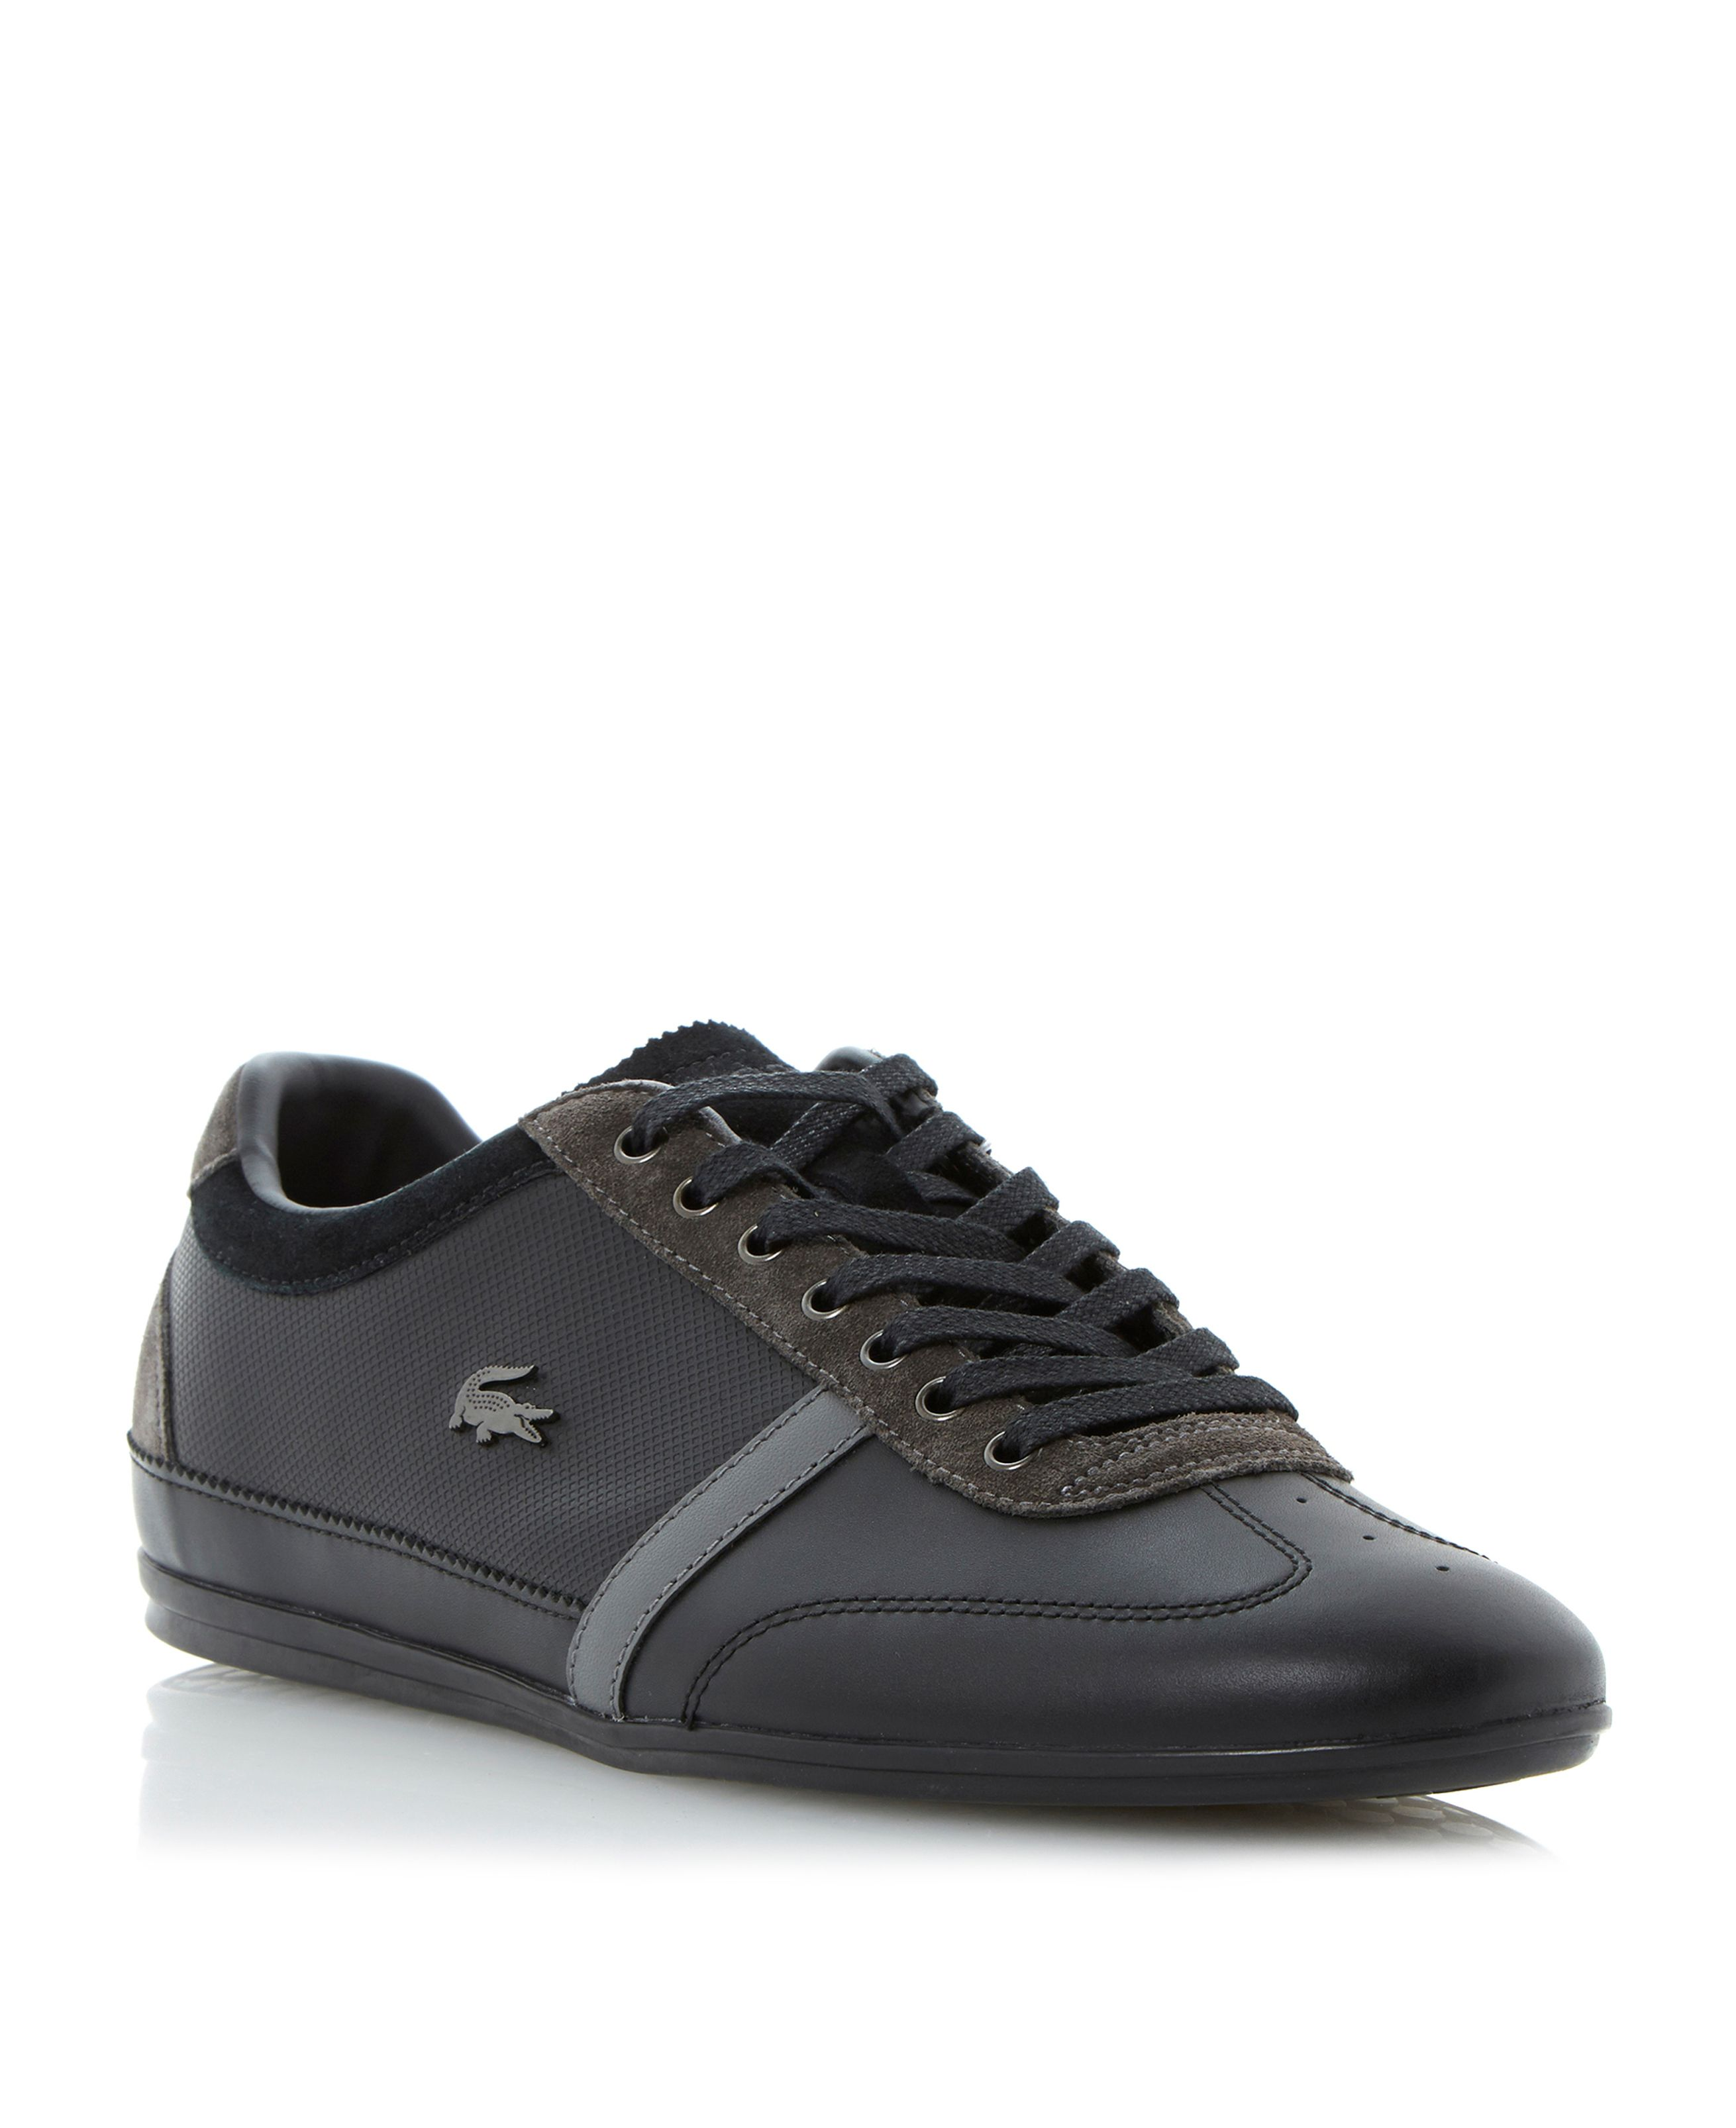 Misano 31 premium leather lace up trainers